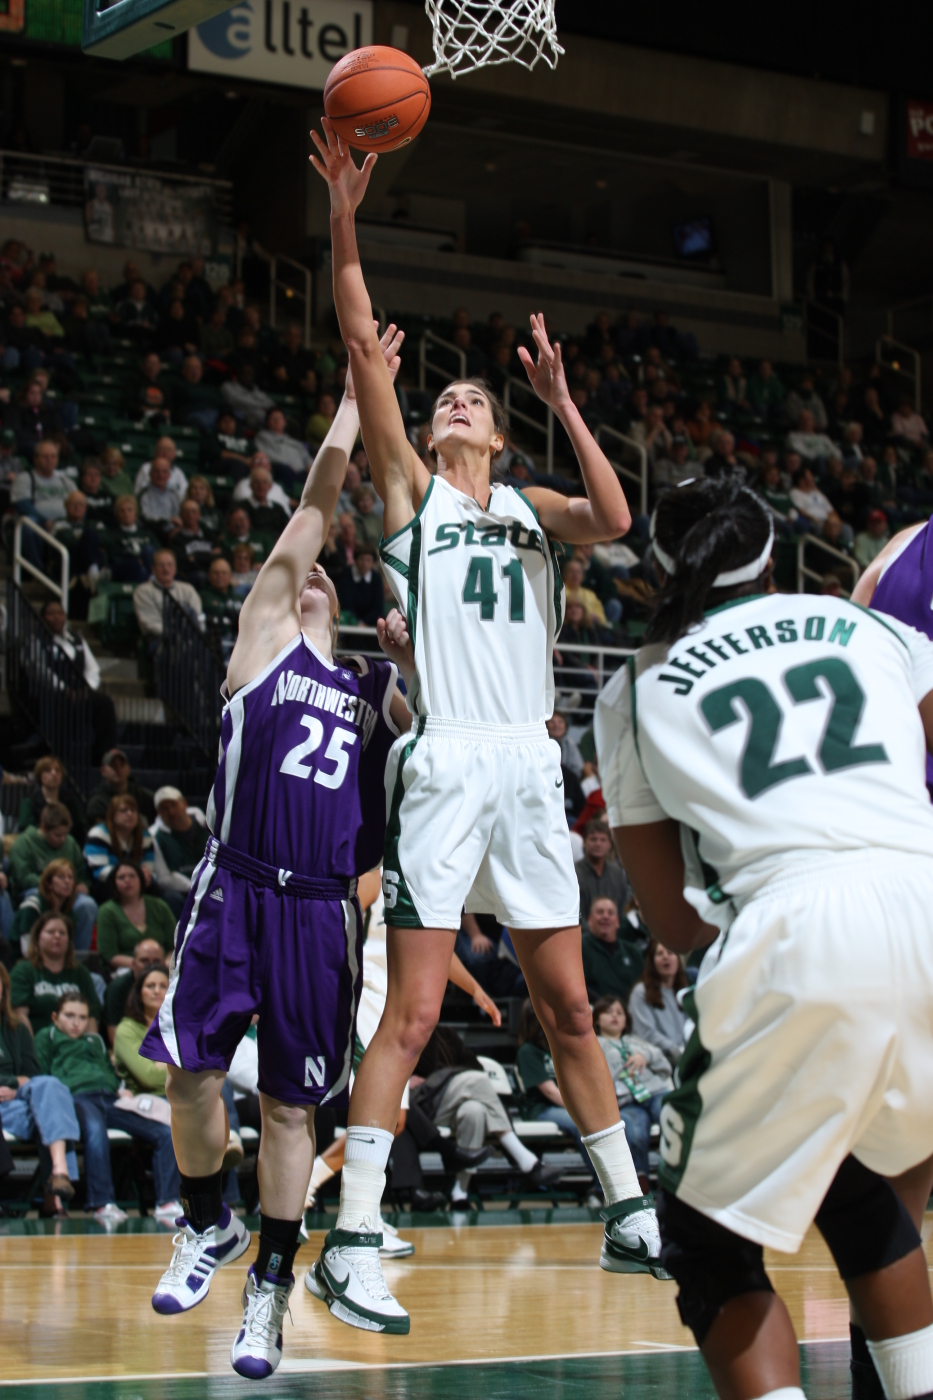 Allyssa Hall spartans move into first place, beat indiana, 71-65 in